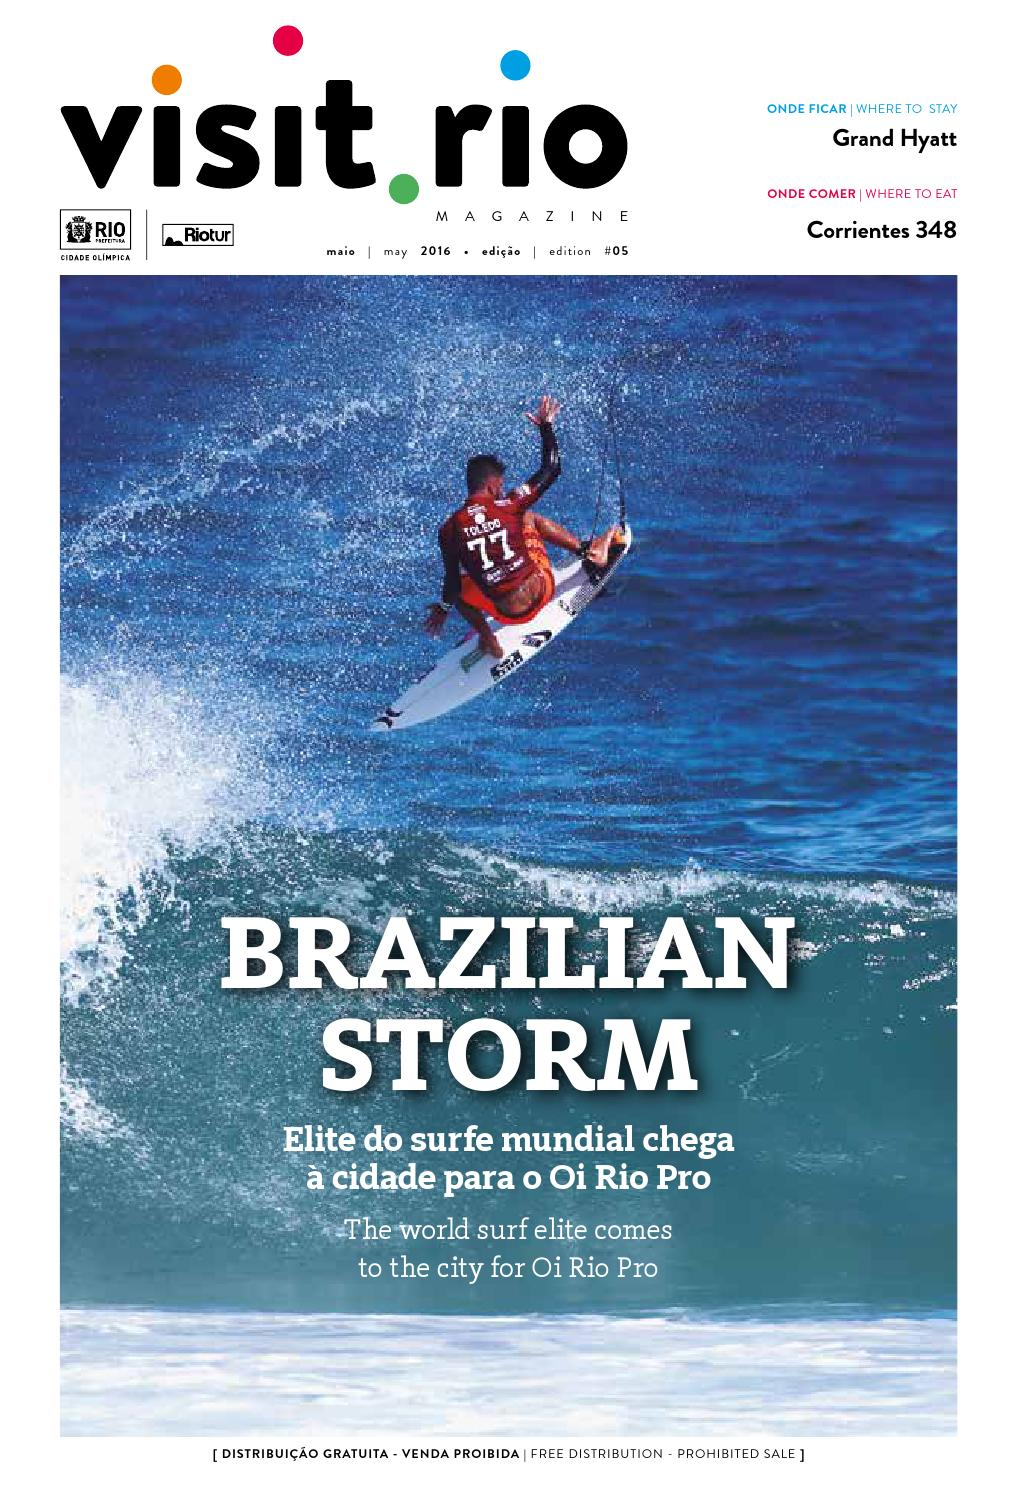 f9be490bf8 Revista visit.rio Maio 2016 by kanenberg - issuu